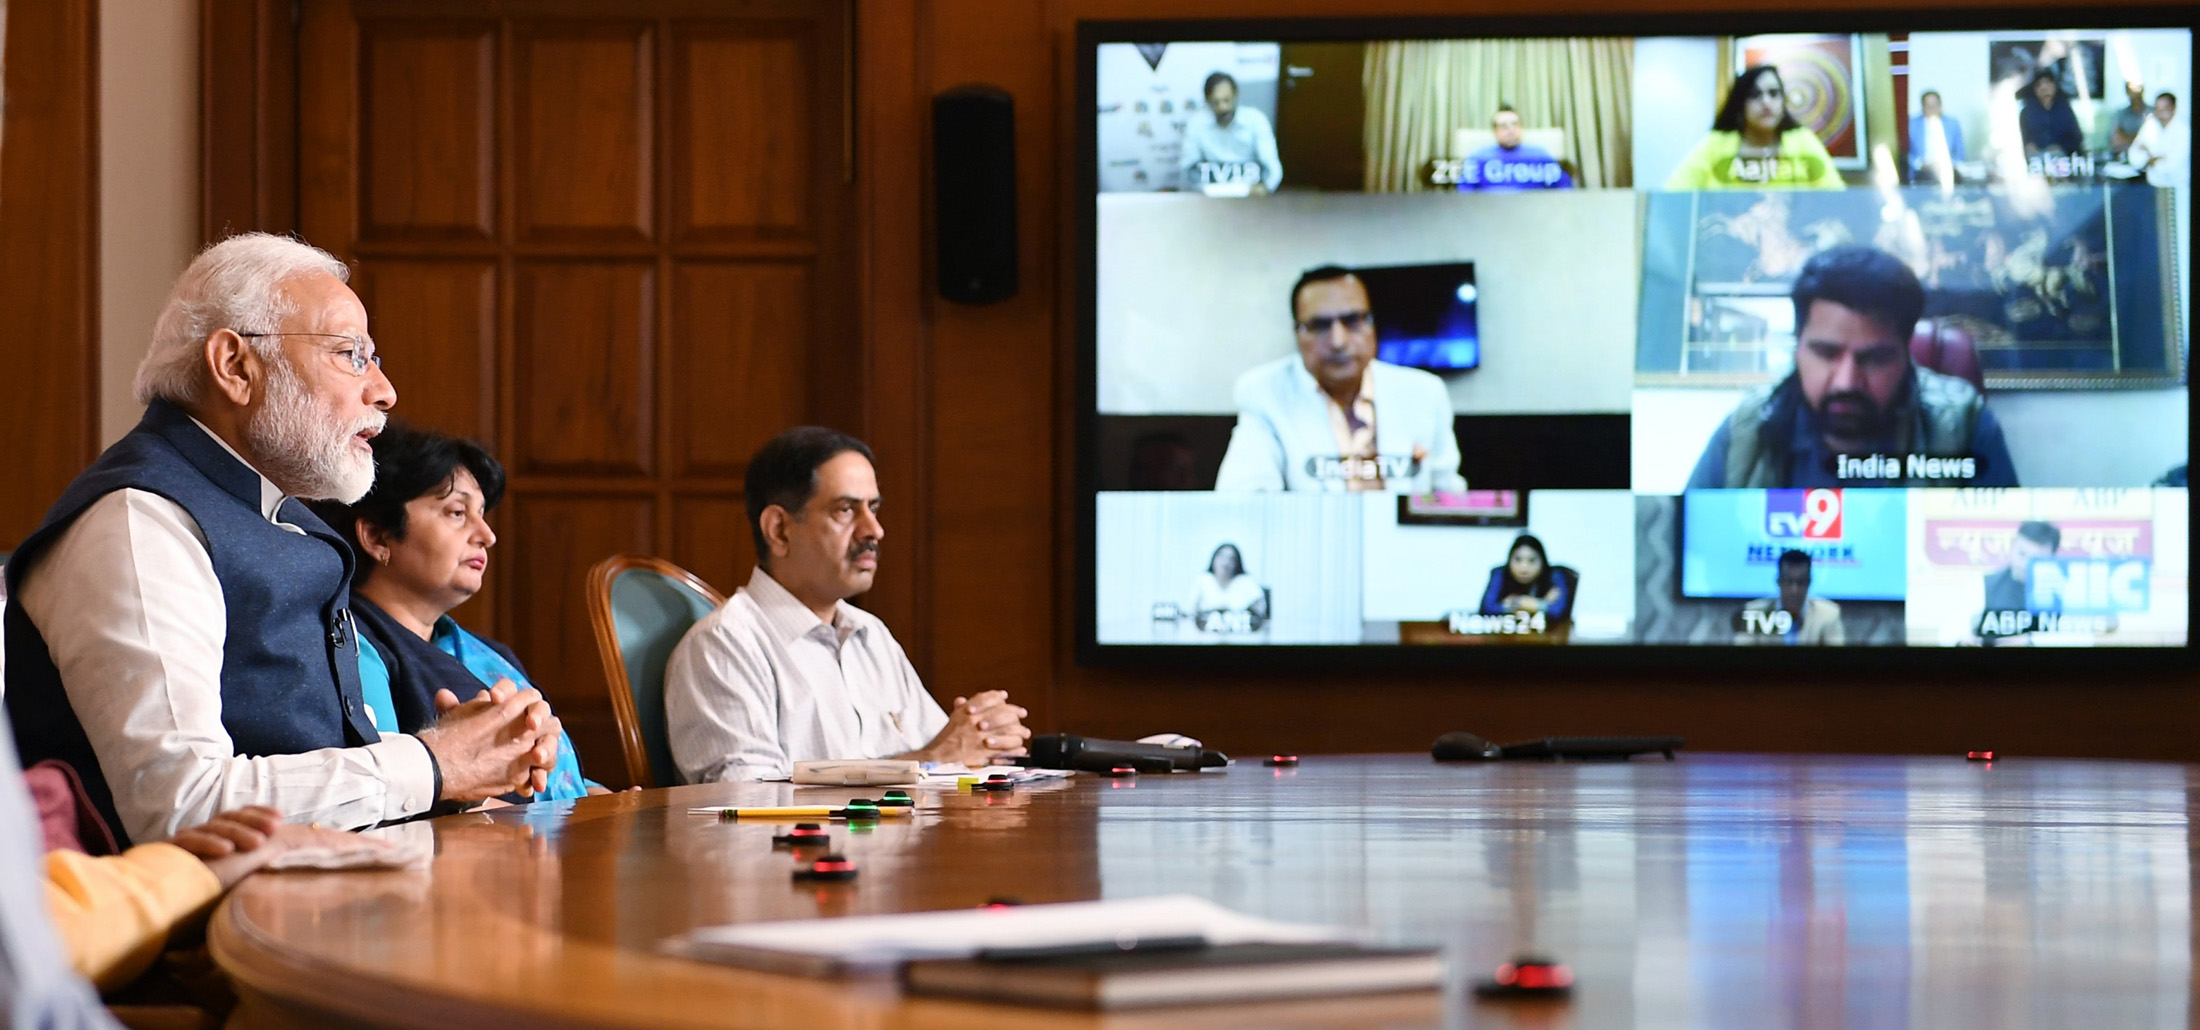 The Prime Minister, Shri Narendra Modi interacting with the key stakeholders from Electronic Media Channels through video conference to discuss the emerging challenges in light of the spread of COVID-19, in New Delhi on March 23, 2020.